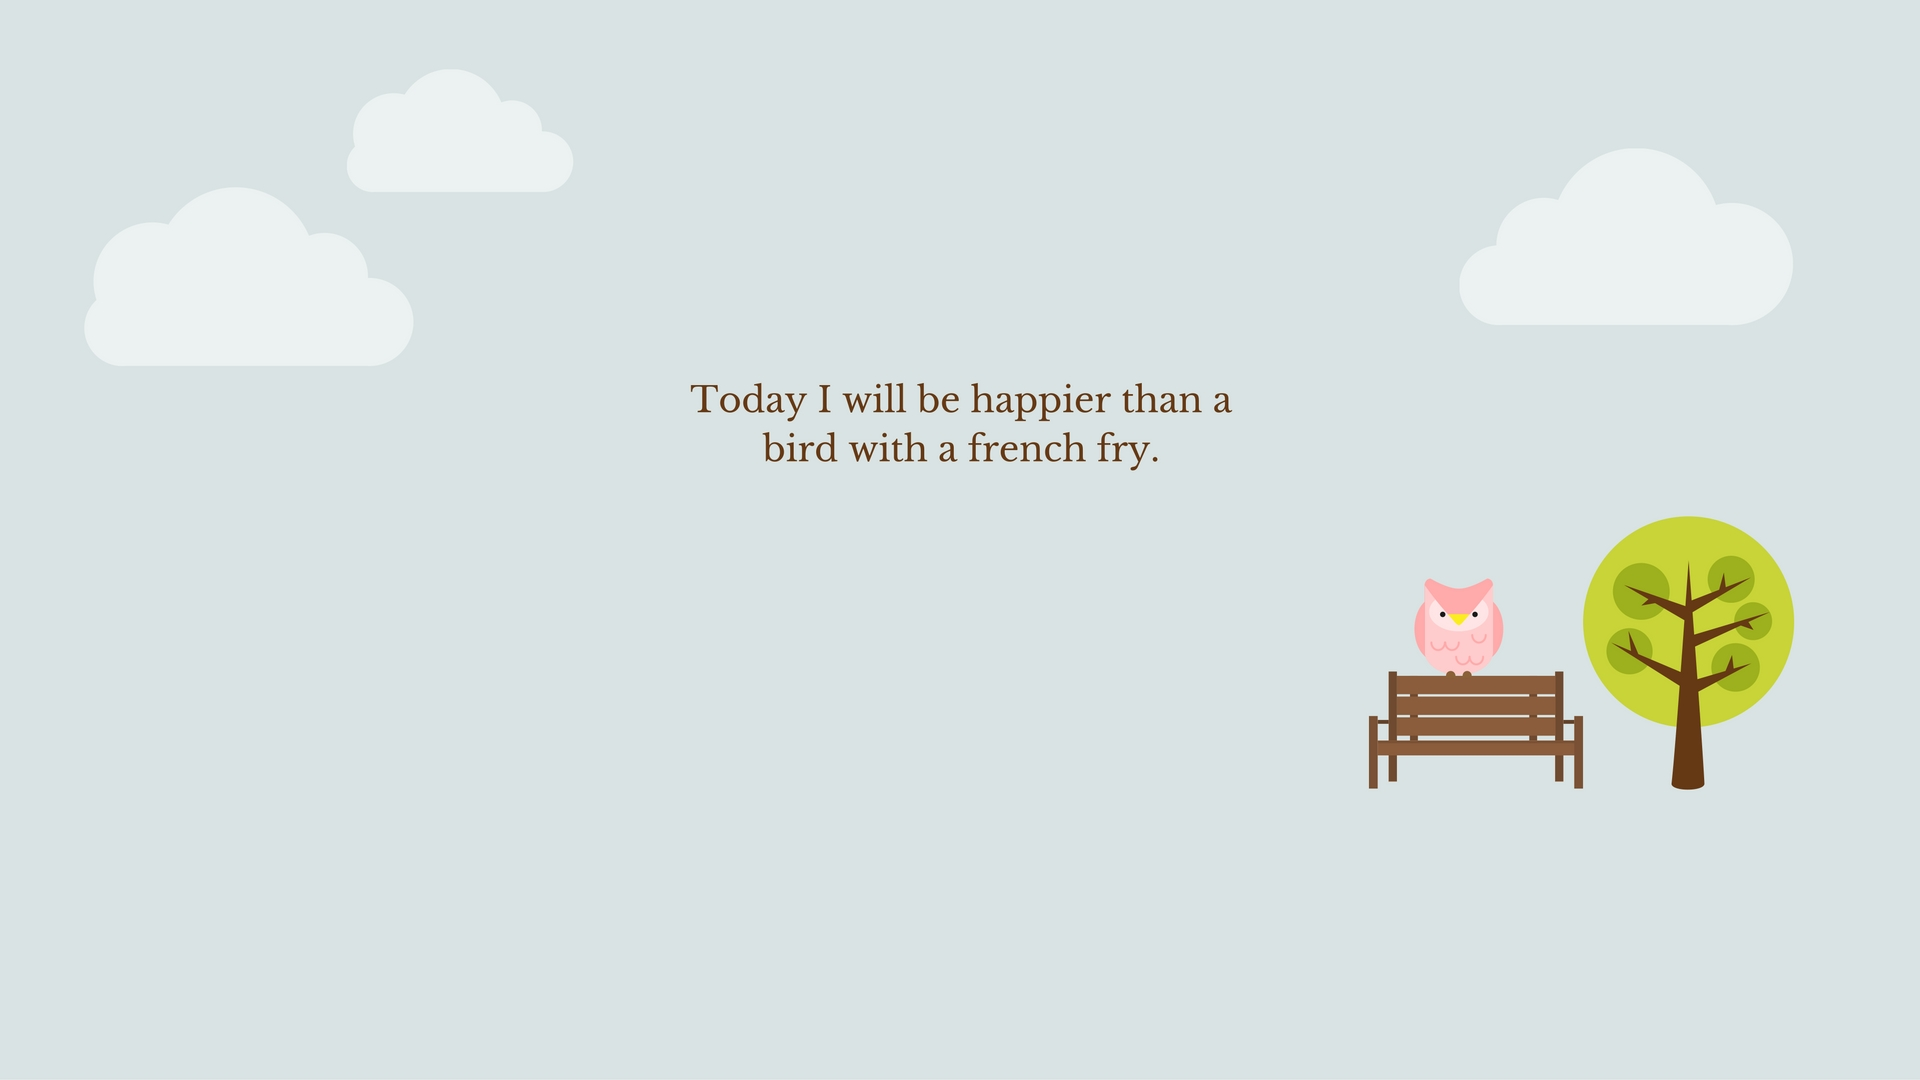 Today I will be happier than a bird with a french fry.